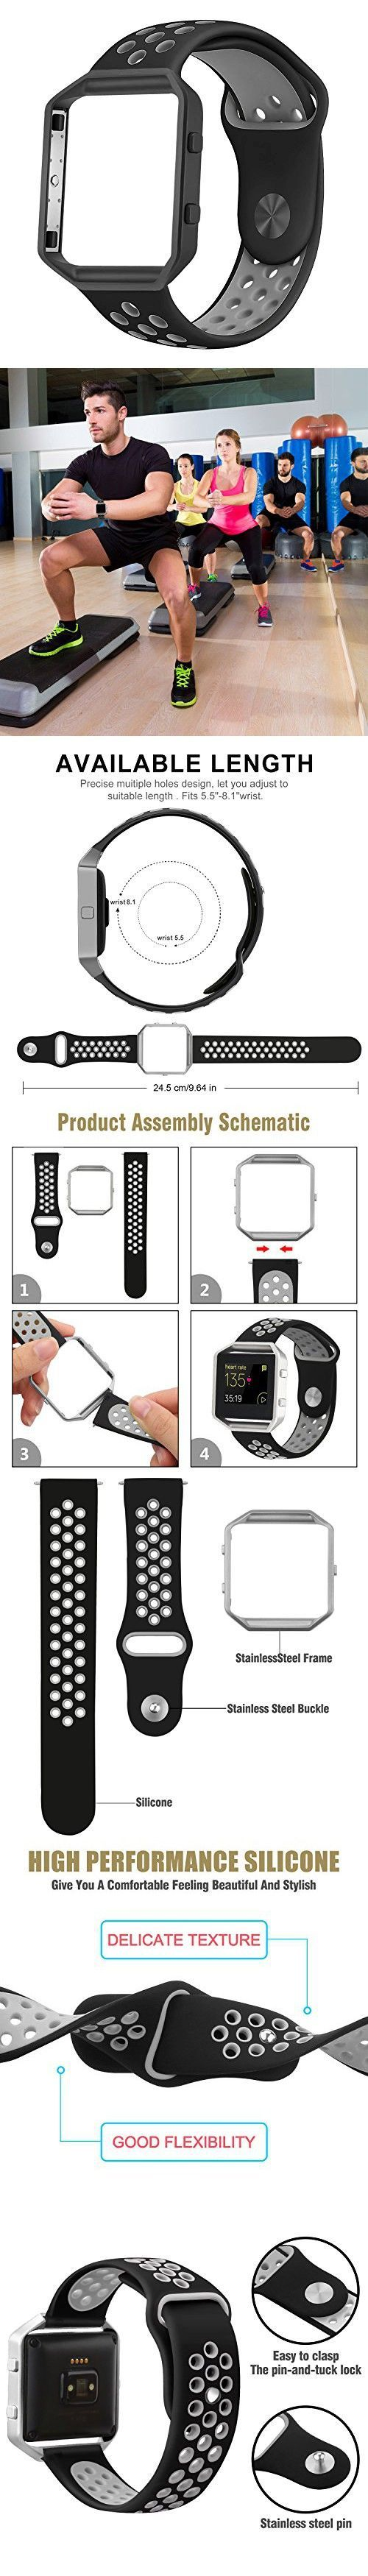 For Fitbit Blaze Band ,Sport Silicone Replacement Strap With Frame For Fitbit Blaze Smart Fitness Watch,Gray adn Black (5.5-8.1 inch)